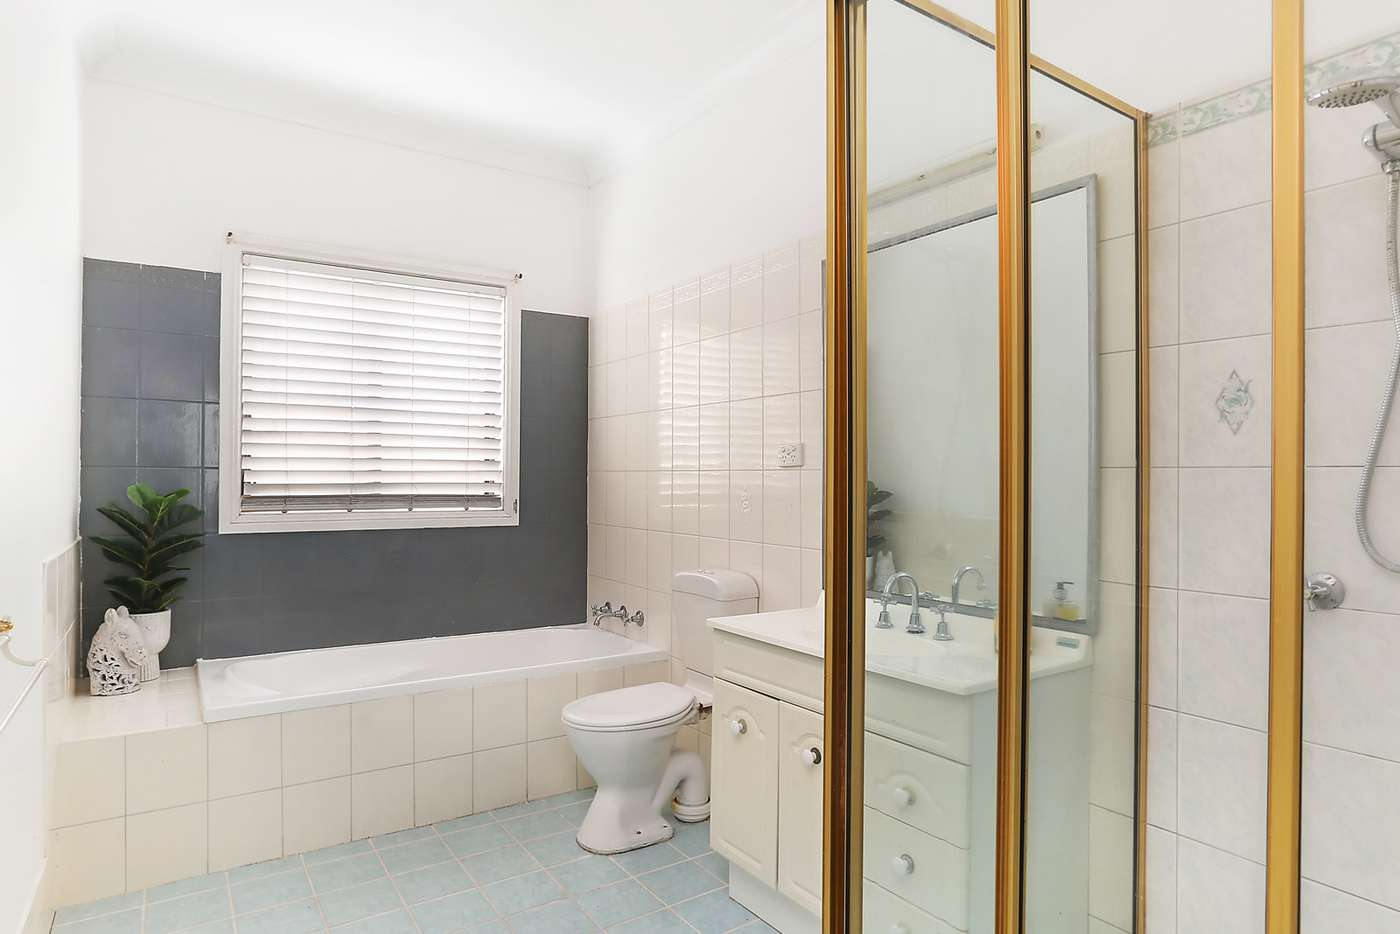 Sixth view of Homely house listing, 226 Gladstone Avenue, Mount Saint Thomas NSW 2500